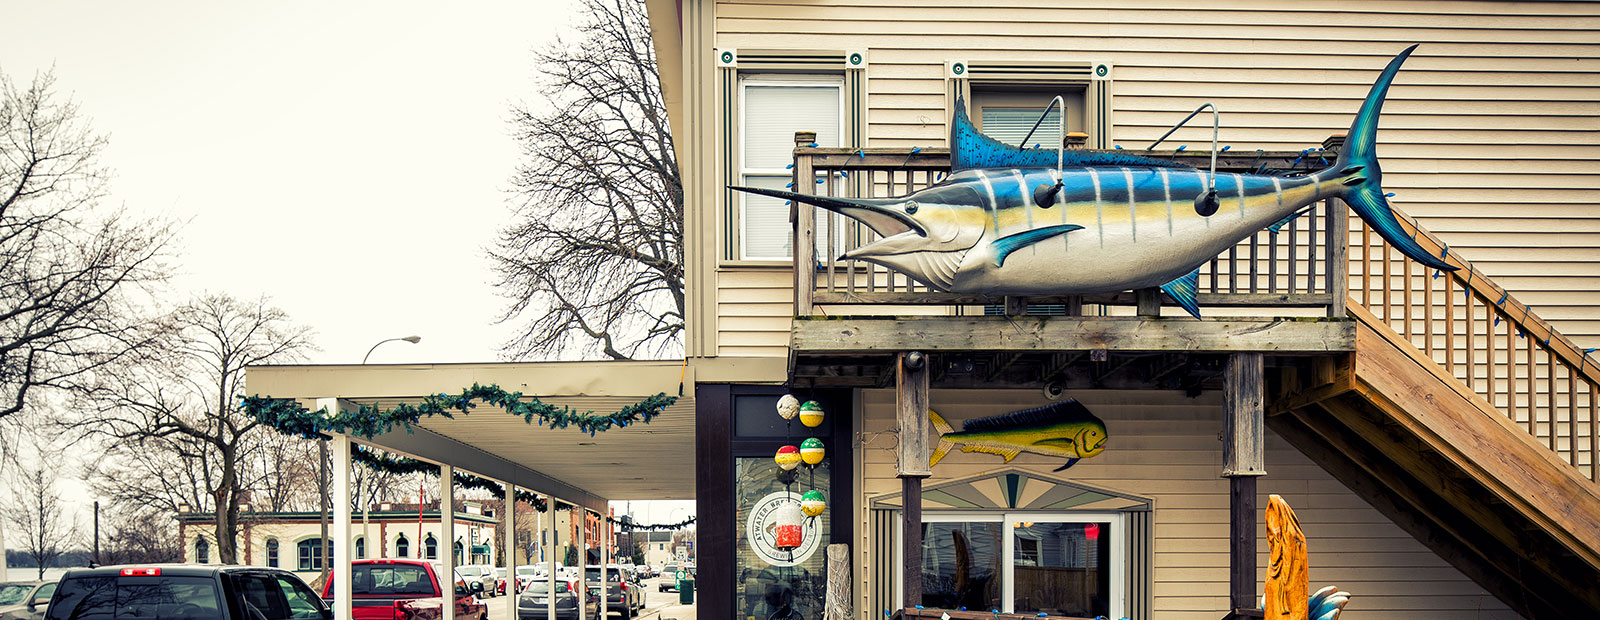 Marine City Fish Co. is a favorite spot for visitors. <span class='image-credits'>David Lewinski</span>